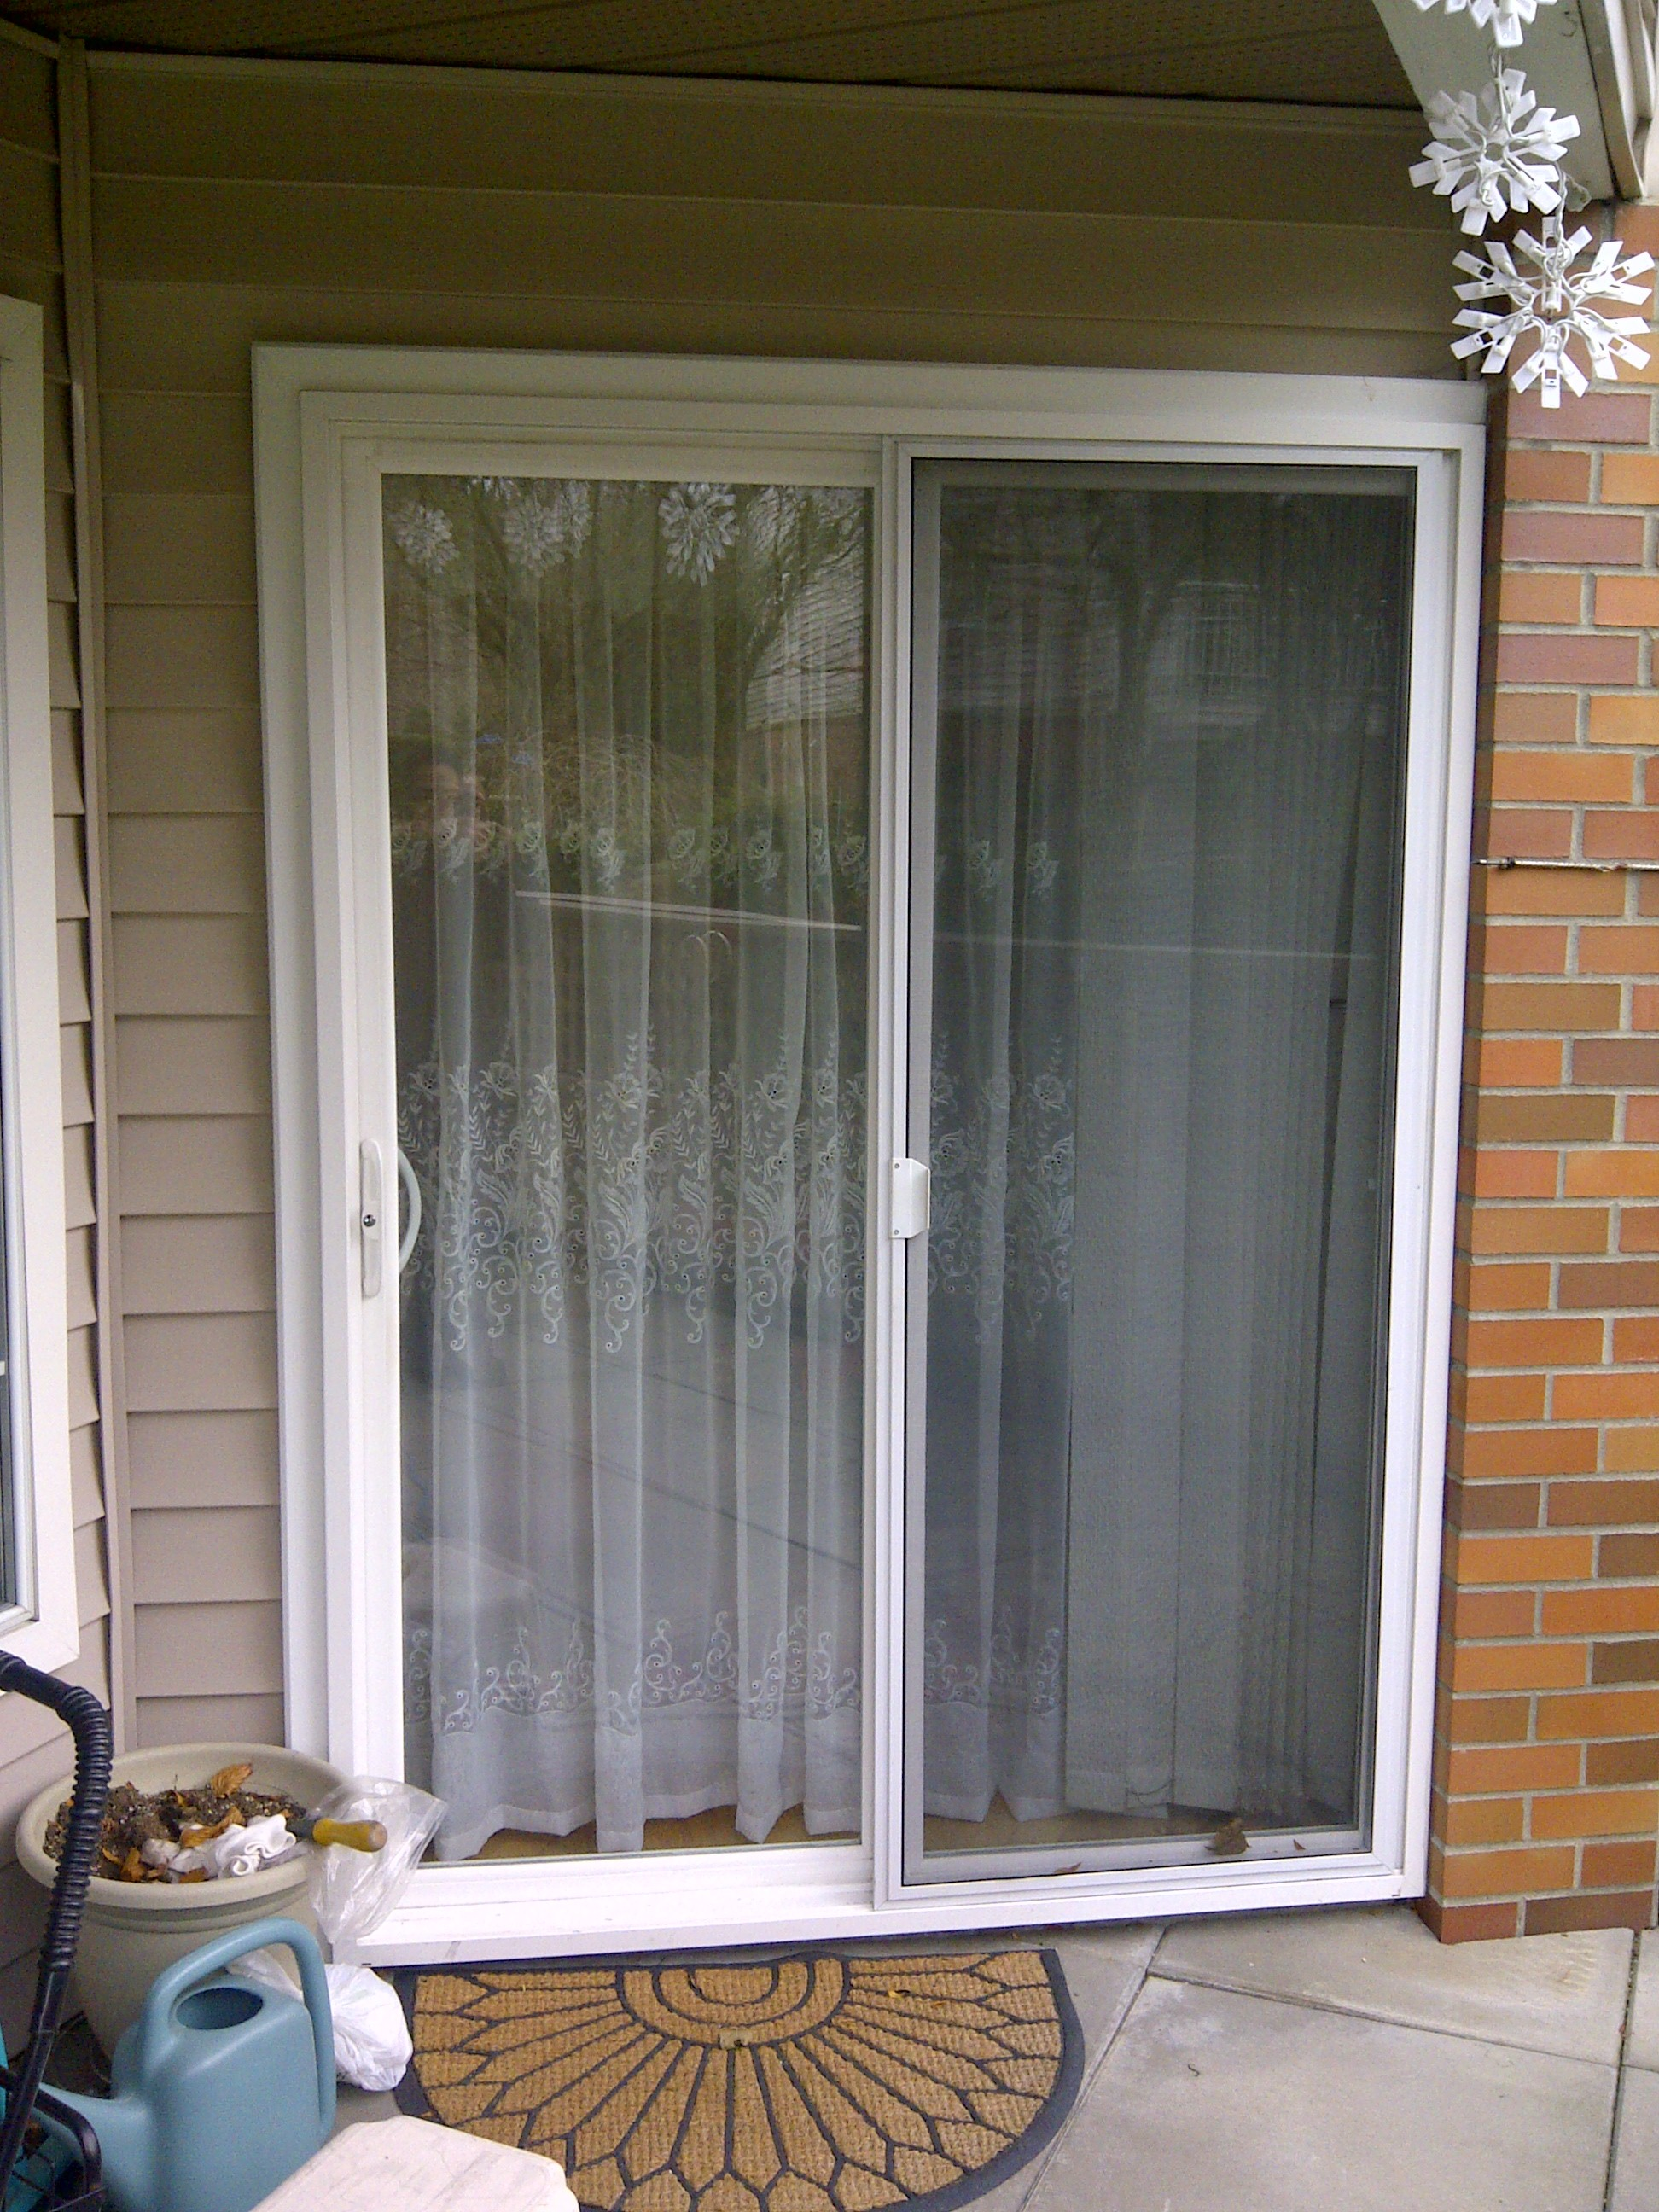 Glass Sliding Entrance Doors Of Vancouver Glass Door Company Work With Us To Design A